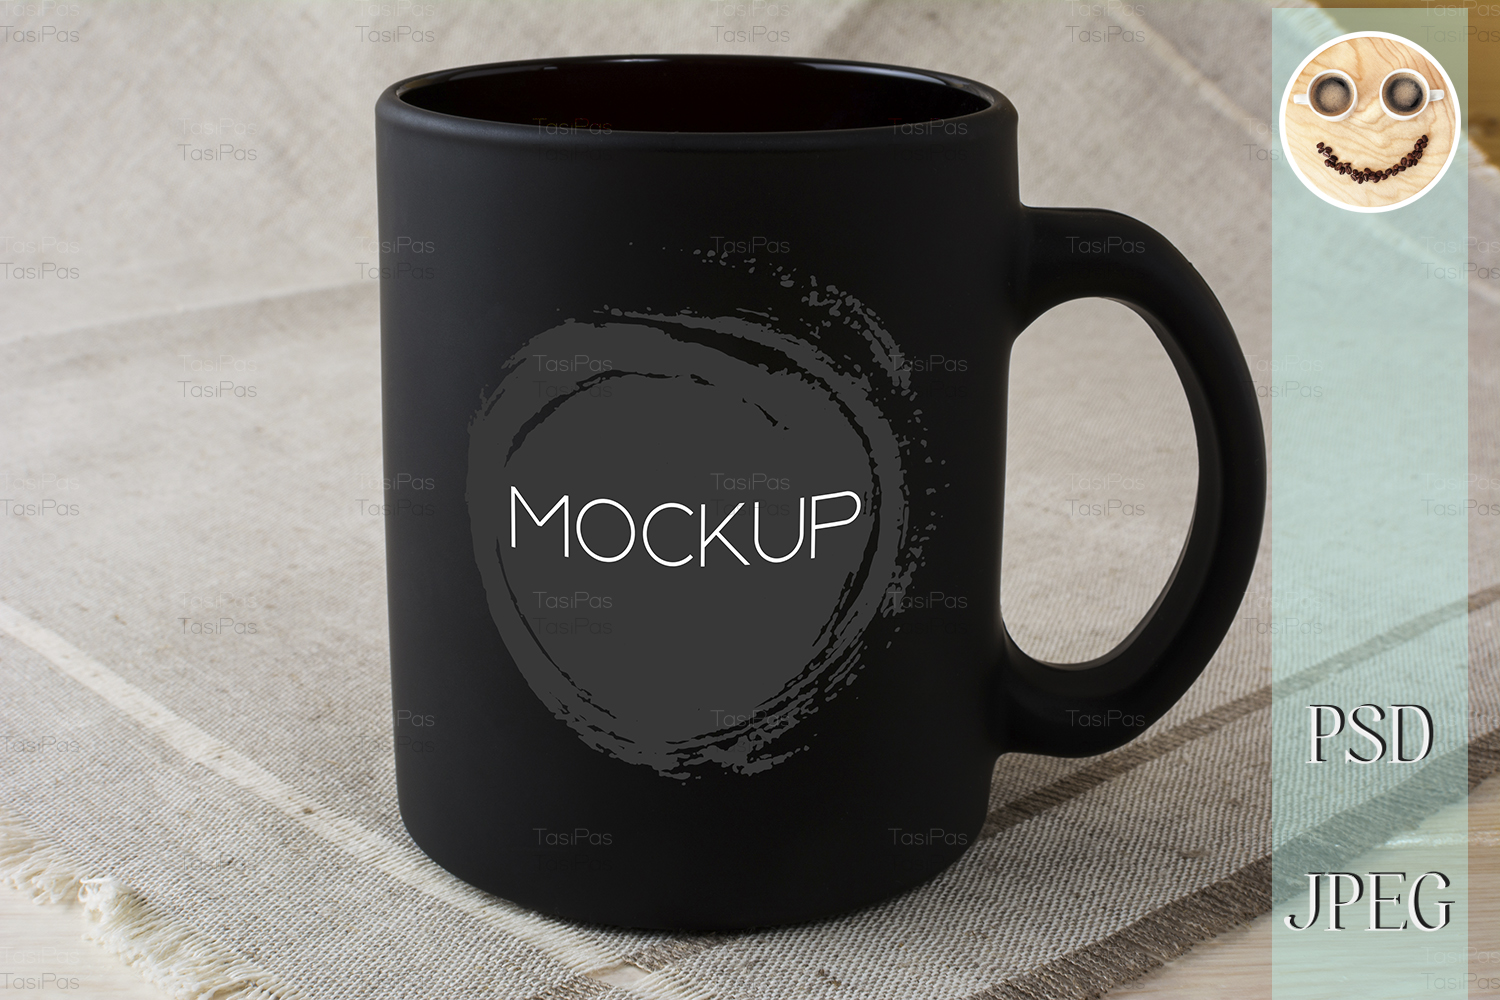 Download Free Black Coffee Mug Mockup On Linen Napkin Graphic By Tasipas for Cricut Explore, Silhouette and other cutting machines.